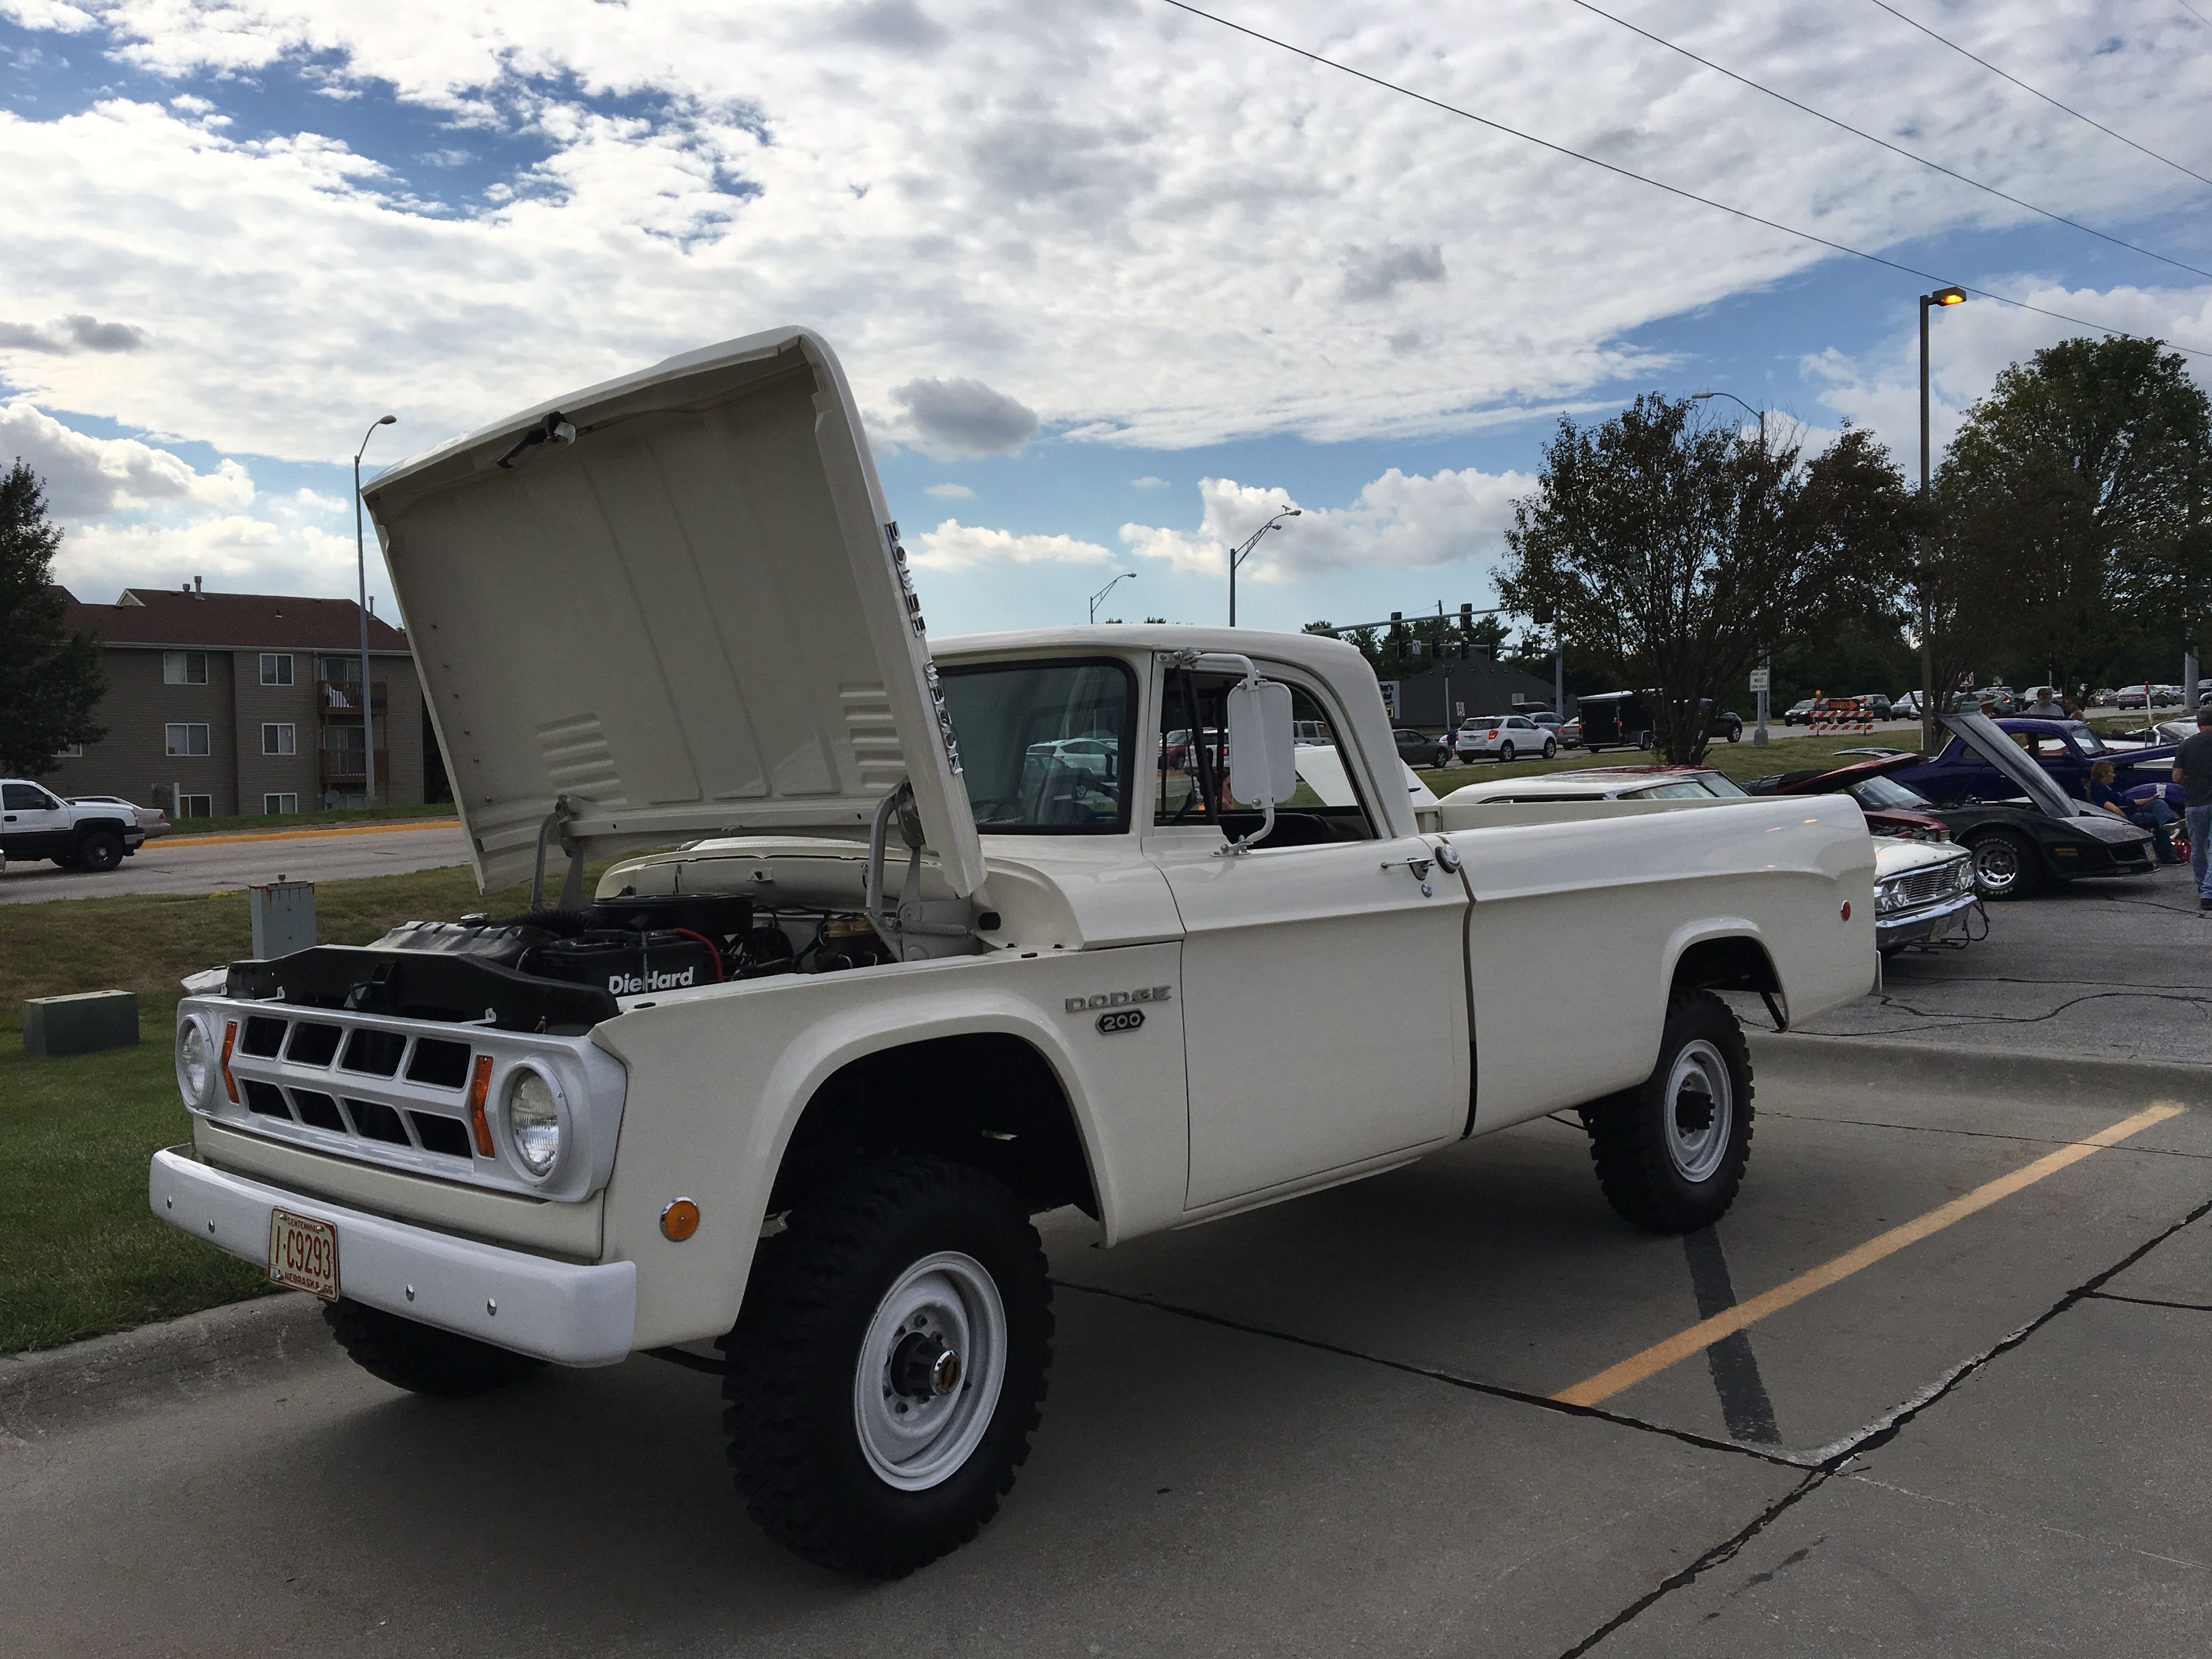 Mopar Garage 1968 Dodge Power Wagon Pick Up Here Is A Pristine In Regular Cab Long Box Version This Beefy Truck As Tons Of Torque To Push The Vehicle Around With 456 Gear